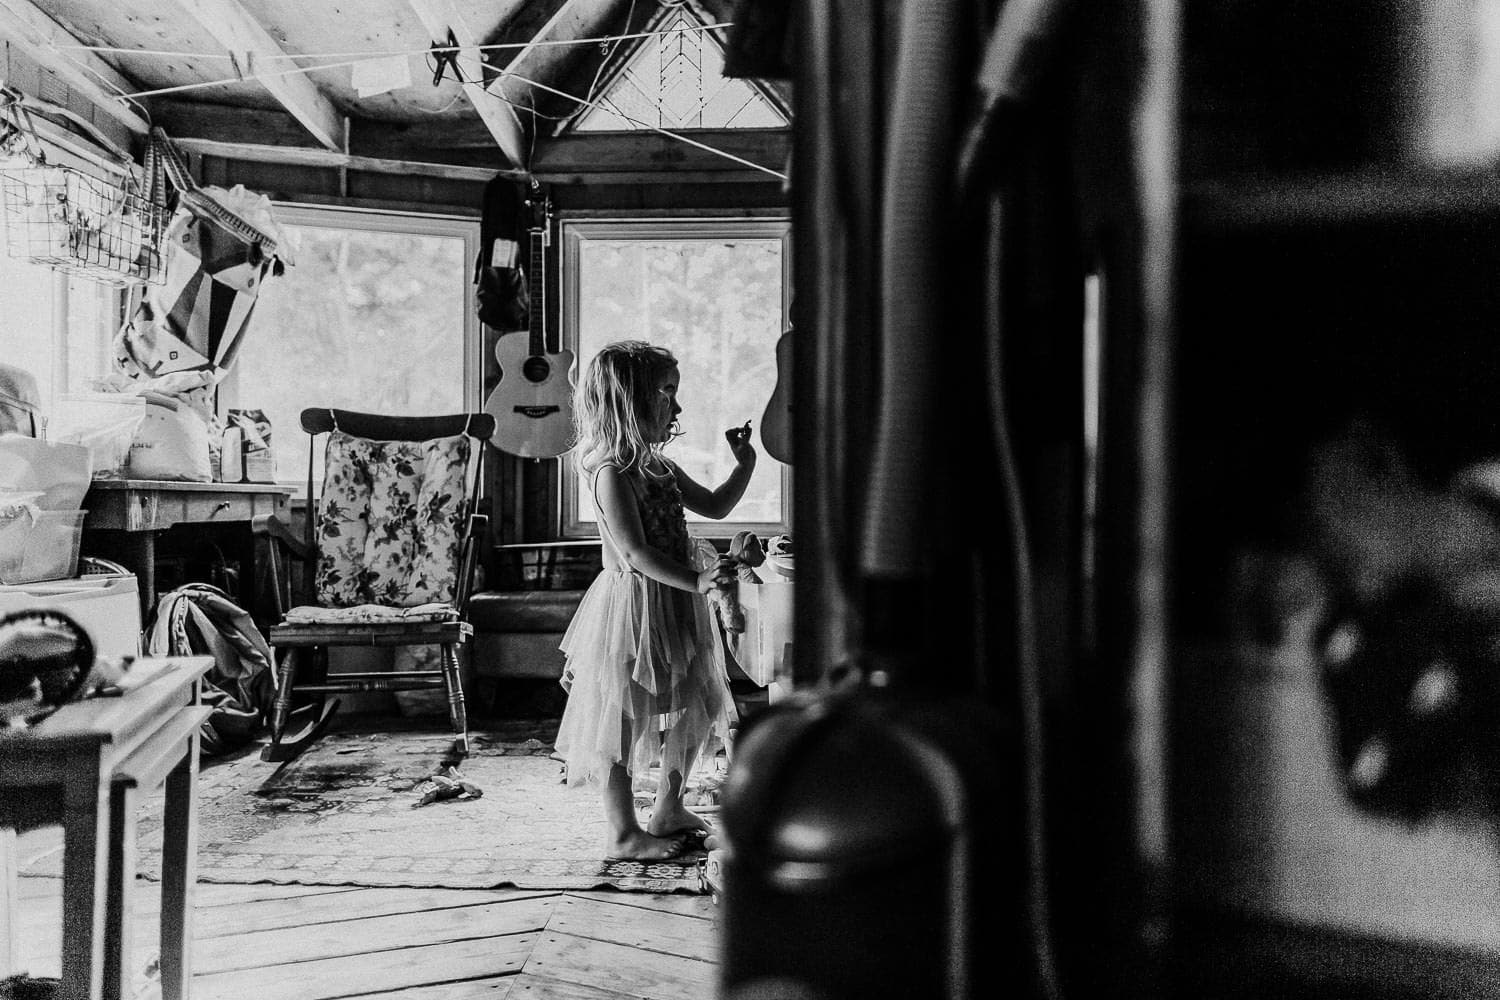 Little girl in room with lots of windows in a dress - what to do at home with kids